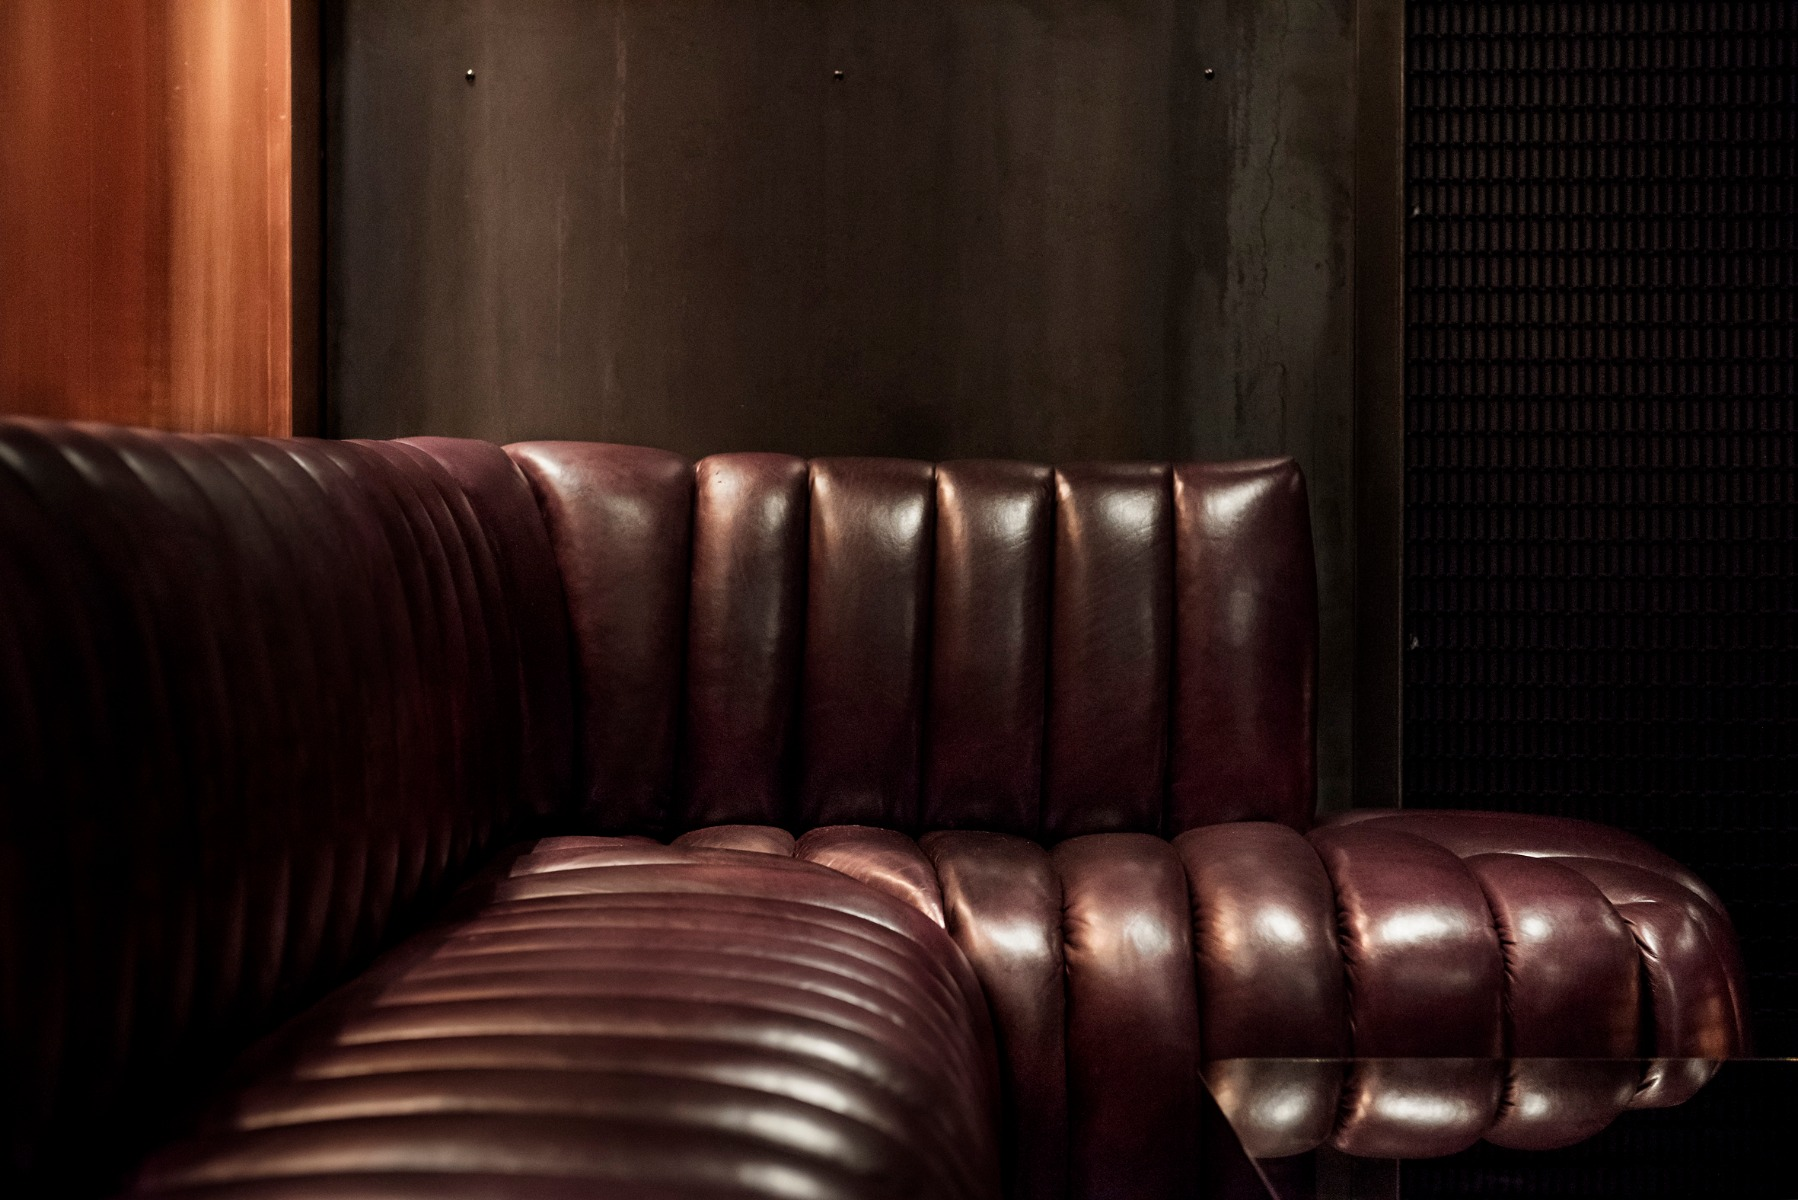 Detail of the custom leather banquette at Himitsu in Atlanta, designed by Tom Dixon Studio.